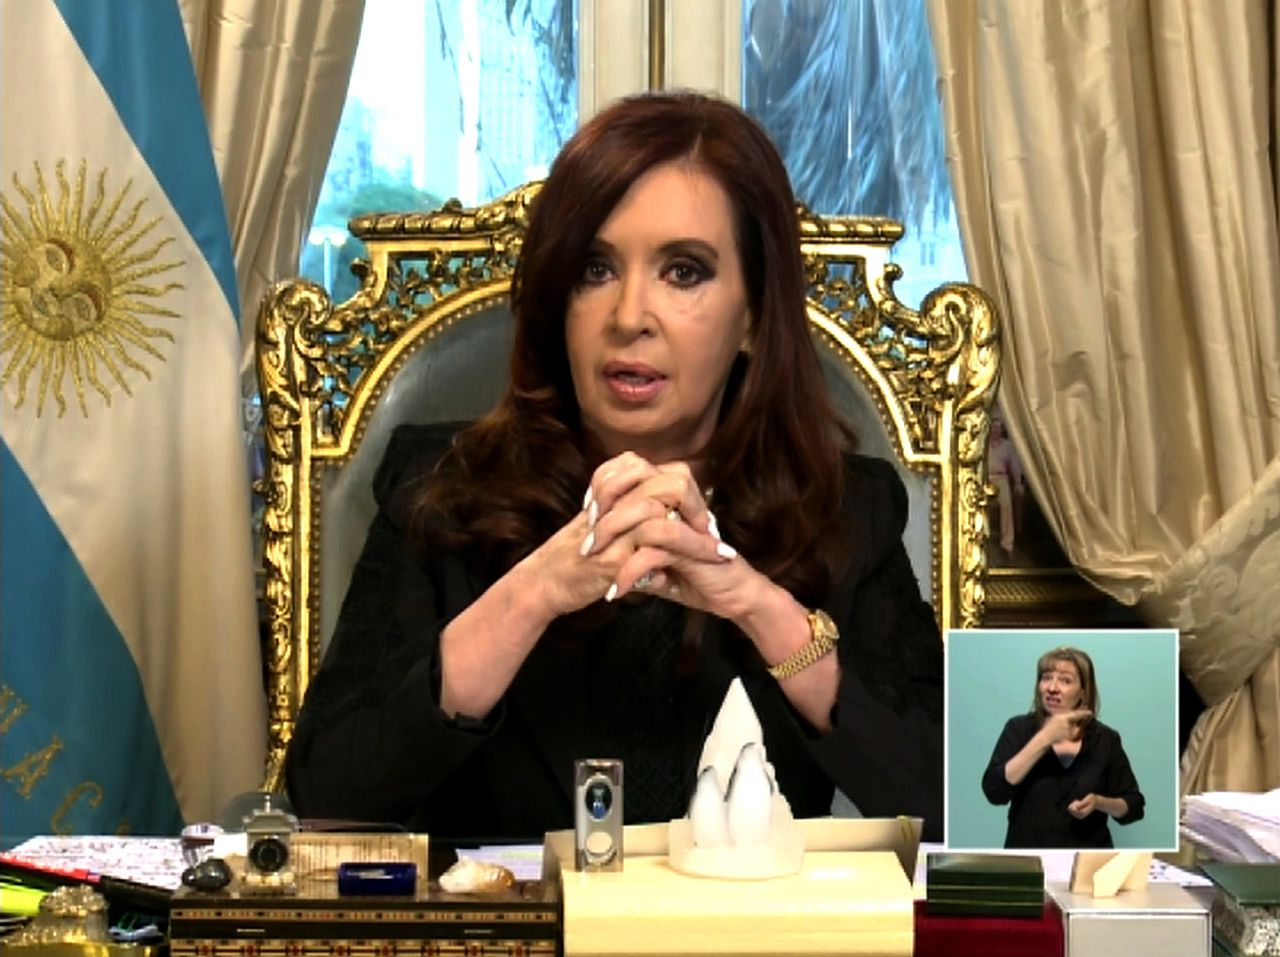 "TV grab from the government-sponsored Canal 7 channel of Argentine President Cristina Fernandez de Kirchner announcing during an official broadcast at the Government Palace in Buenos Aires on February 7, 2013 the delivering to the Argentine Congress for its endorsement of the bilateral agreement signed between Argentina and Iran to set up a commission to probe the 1994 bombing of a Jewish center in Buenos Aires. AFP PHOTO /CANAL 7/HO RESTRICTED TO EDITORIAL USE - MANDATORY CREDIT ""AFP PHOTO /CANAL 7/HO"" - NO MARKETING NO ADVERTISING CAMPAIGNS - DISTRIBUTED AS A SERVICE TO CLIENTS"